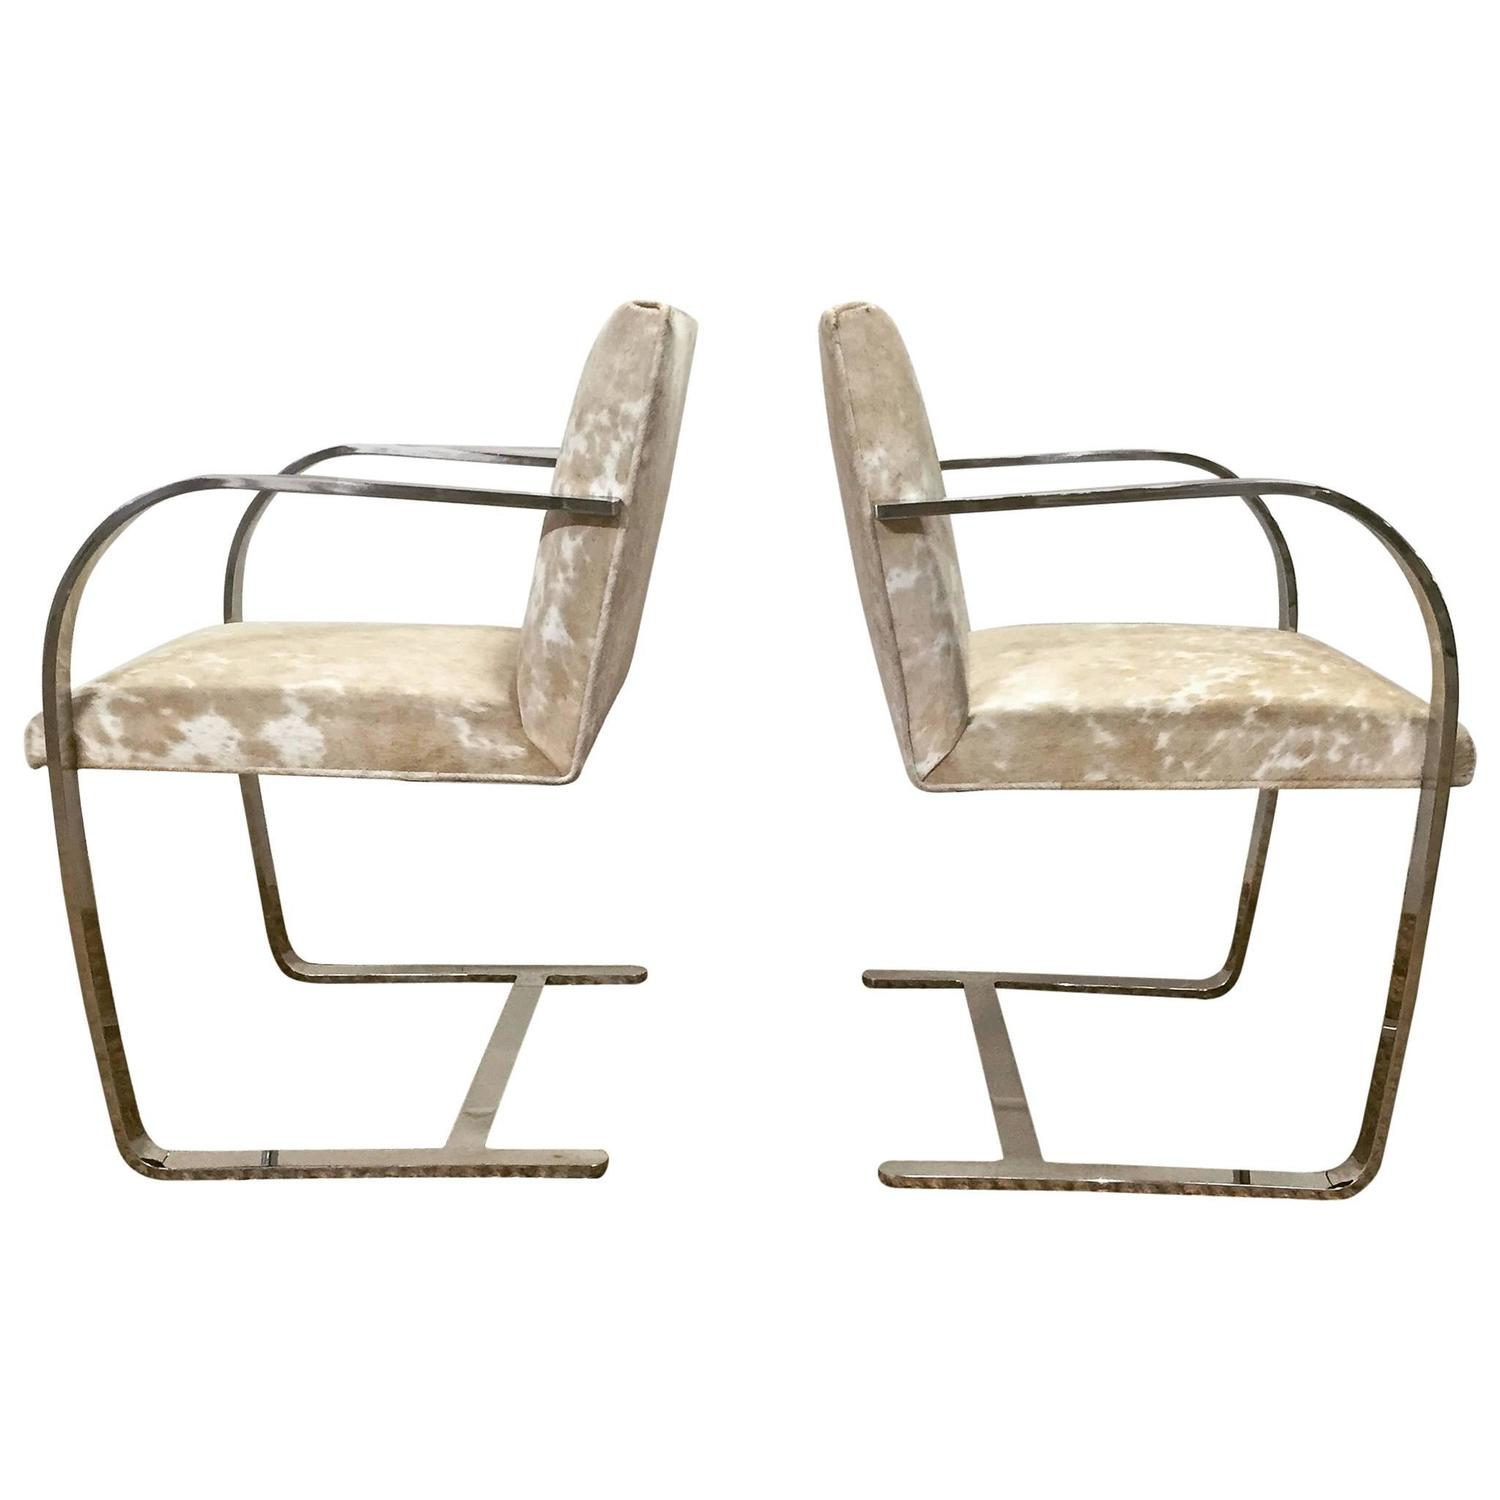 cowhide chairs nz active sitting chair canada pair of brno by mies van der rohe for knoll in